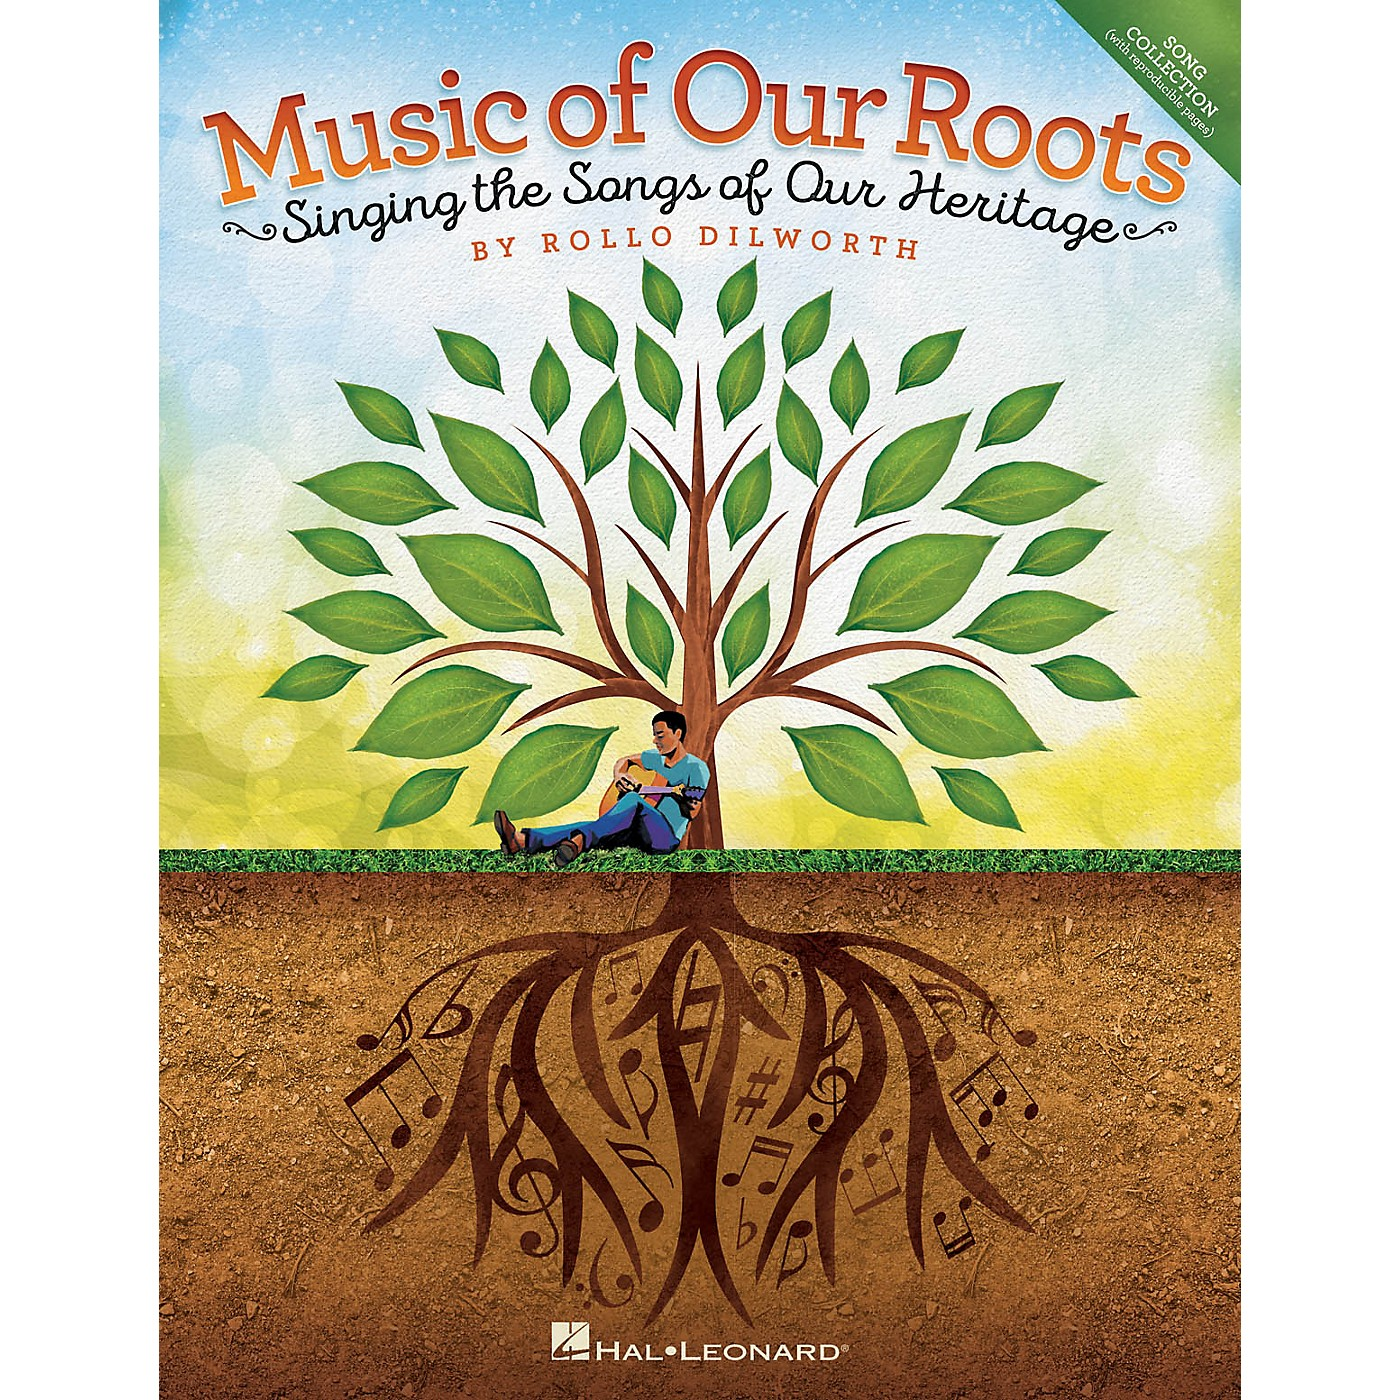 Hal Leonard Music of Our Roots (Singing the Songs of Our Heritage) PERF KIT WITH AUDIO DOWNLOAD by Rollo Dilworth thumbnail